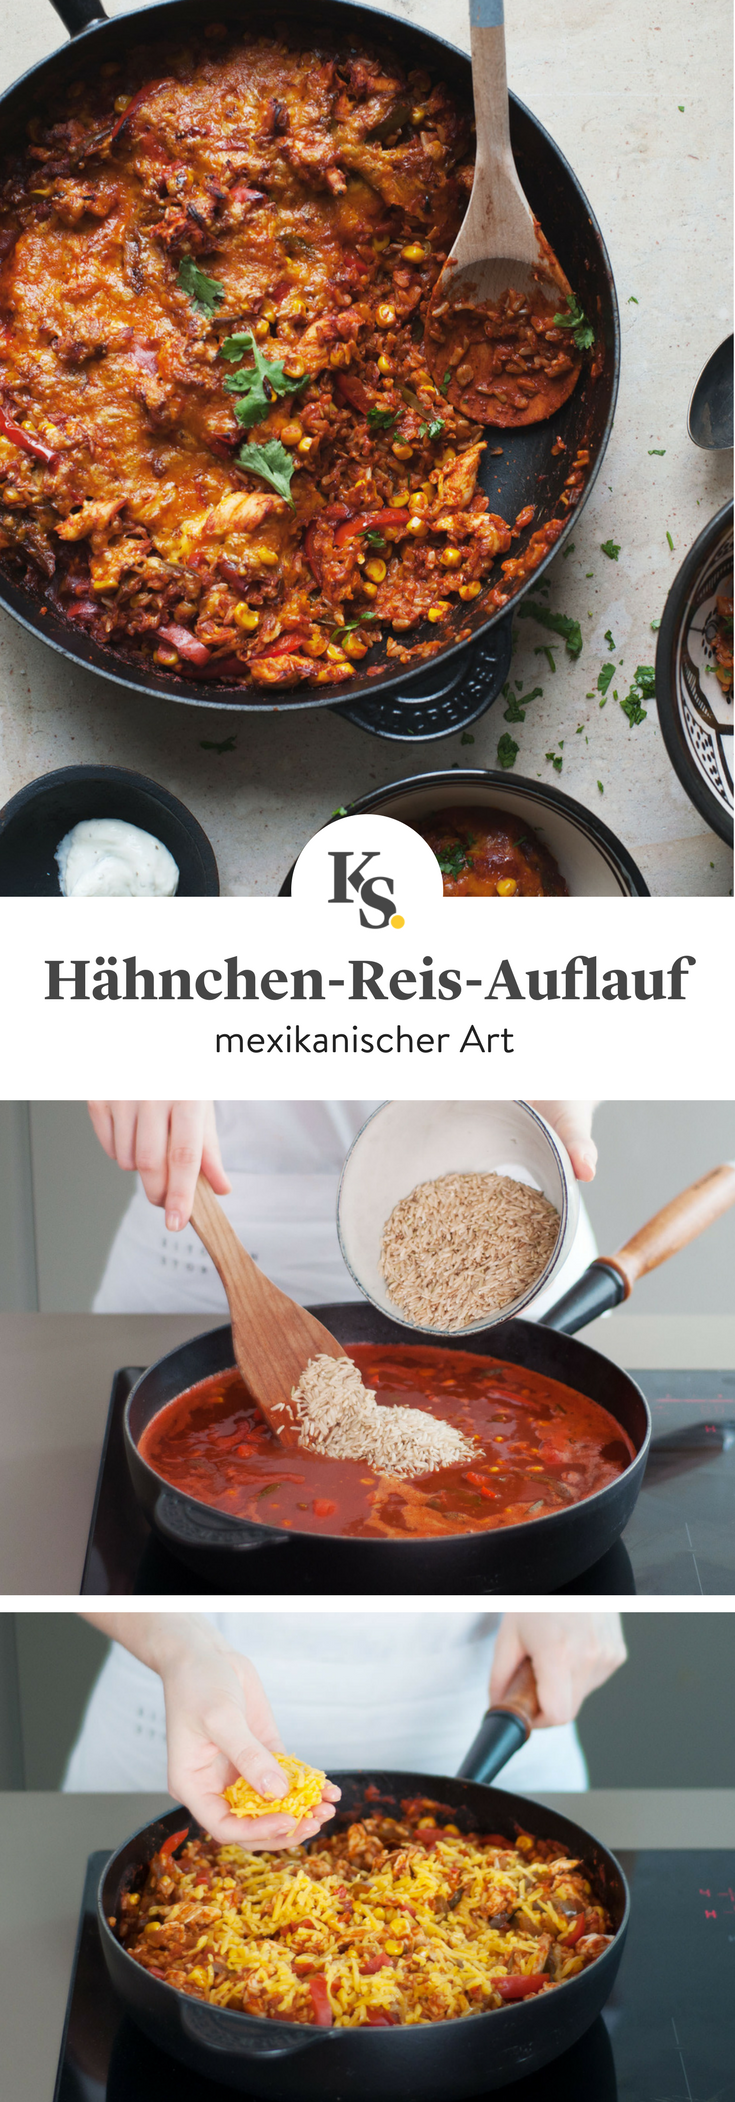 Photo of Mexican Chicken and Rice Casserole Recipe | Kitchen stories